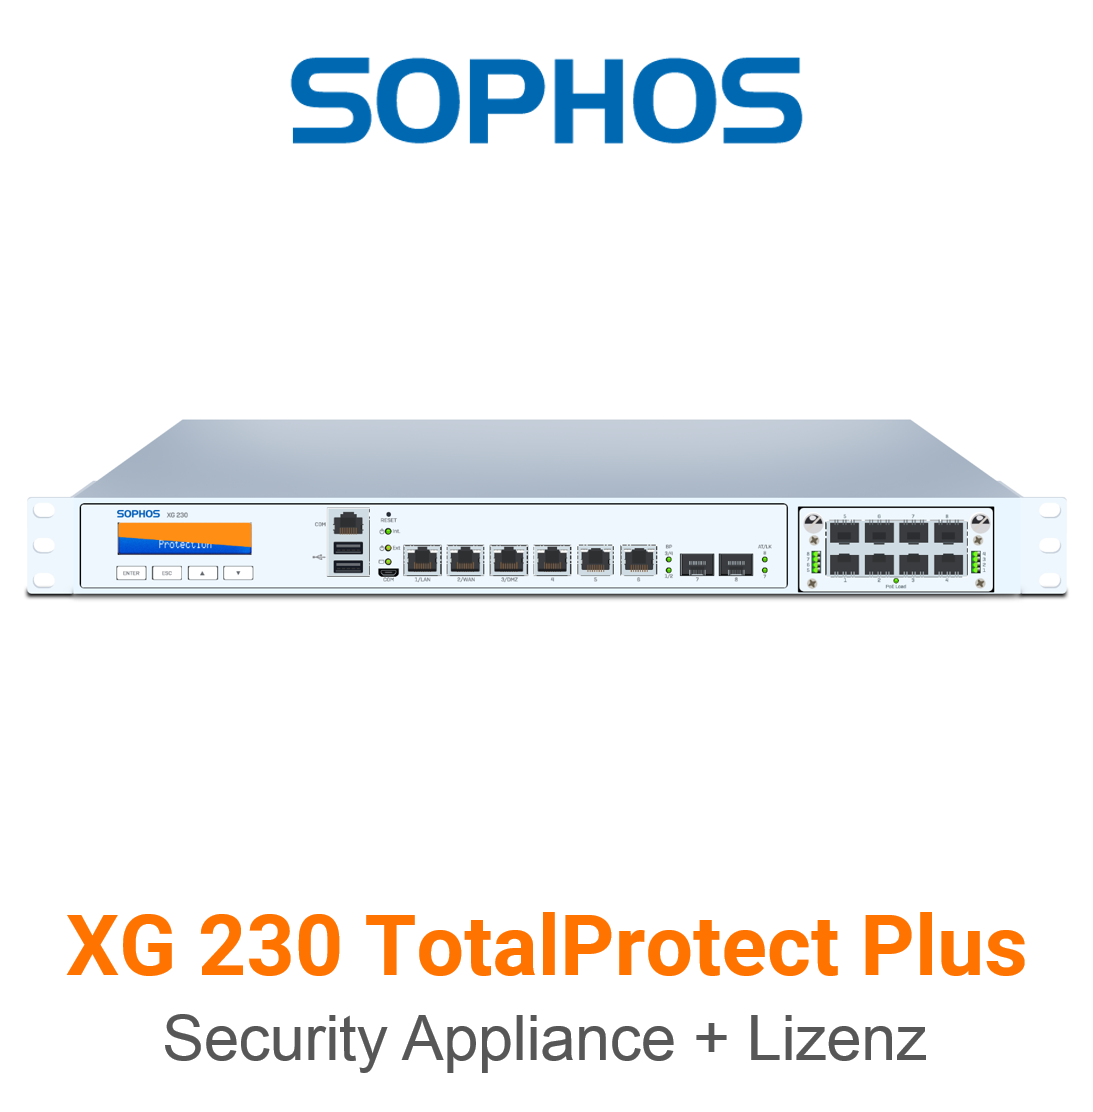 Sophos XG 230 TotalProtect Plus Bundle (Hardware + Lizenz)